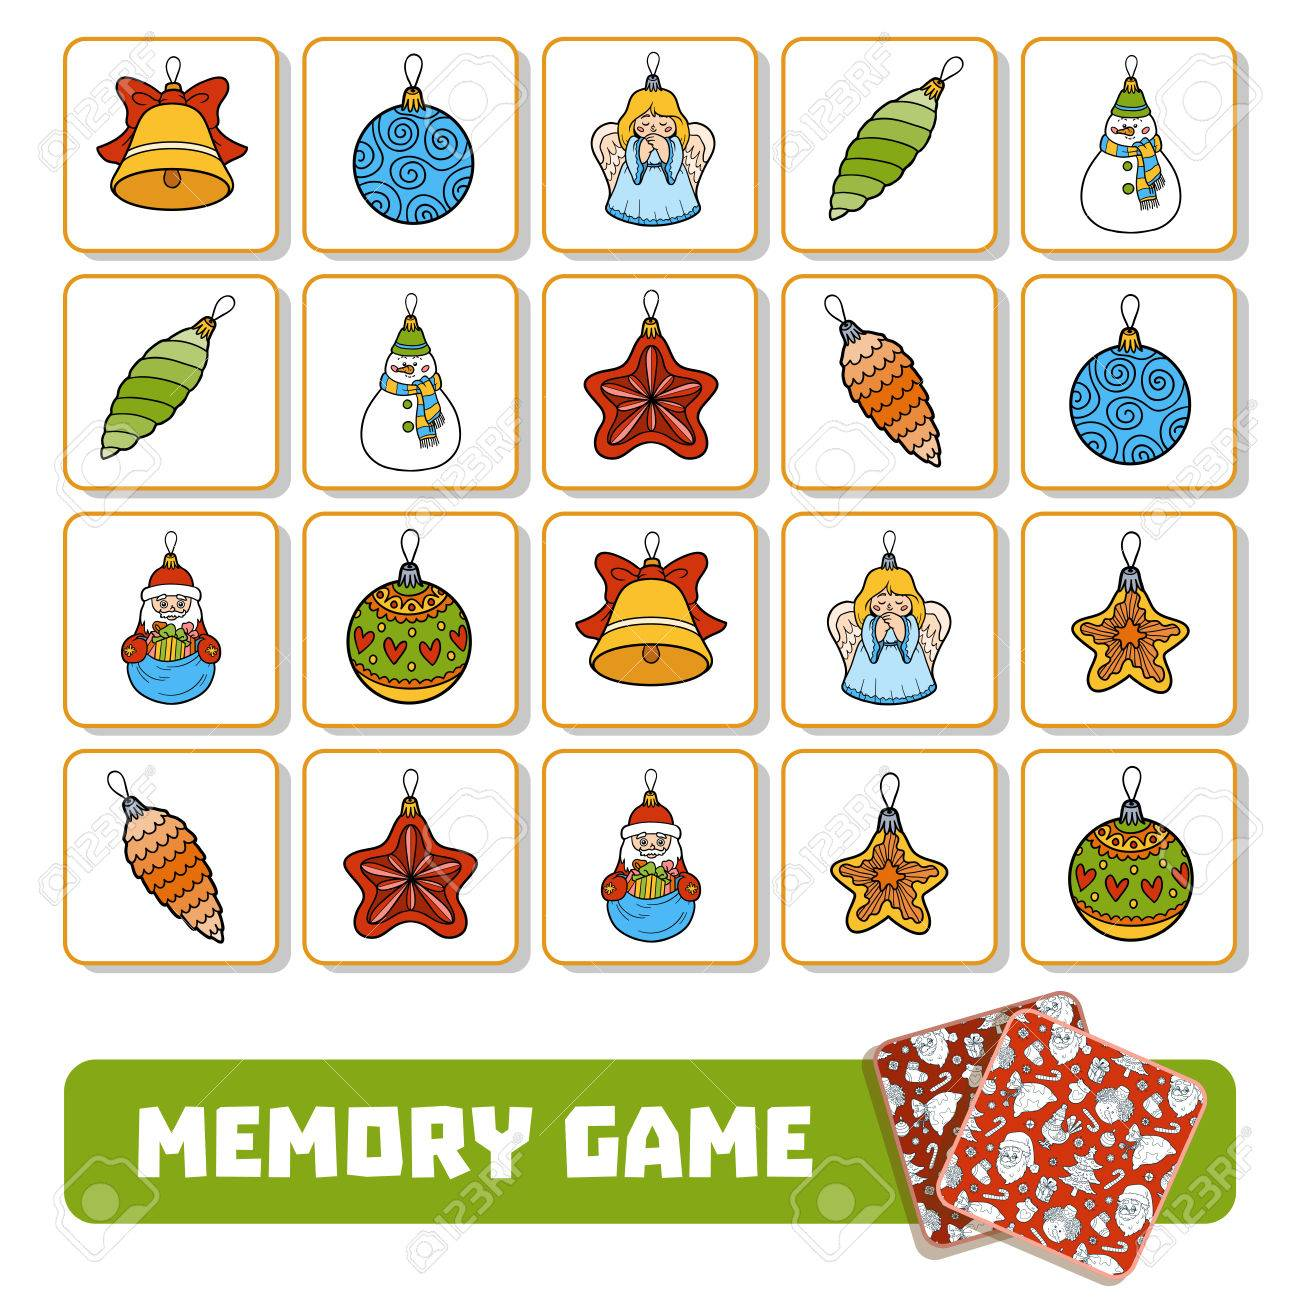 Christmas Preschool.Memory Game For Preschool Children Vector Cards With Christmas